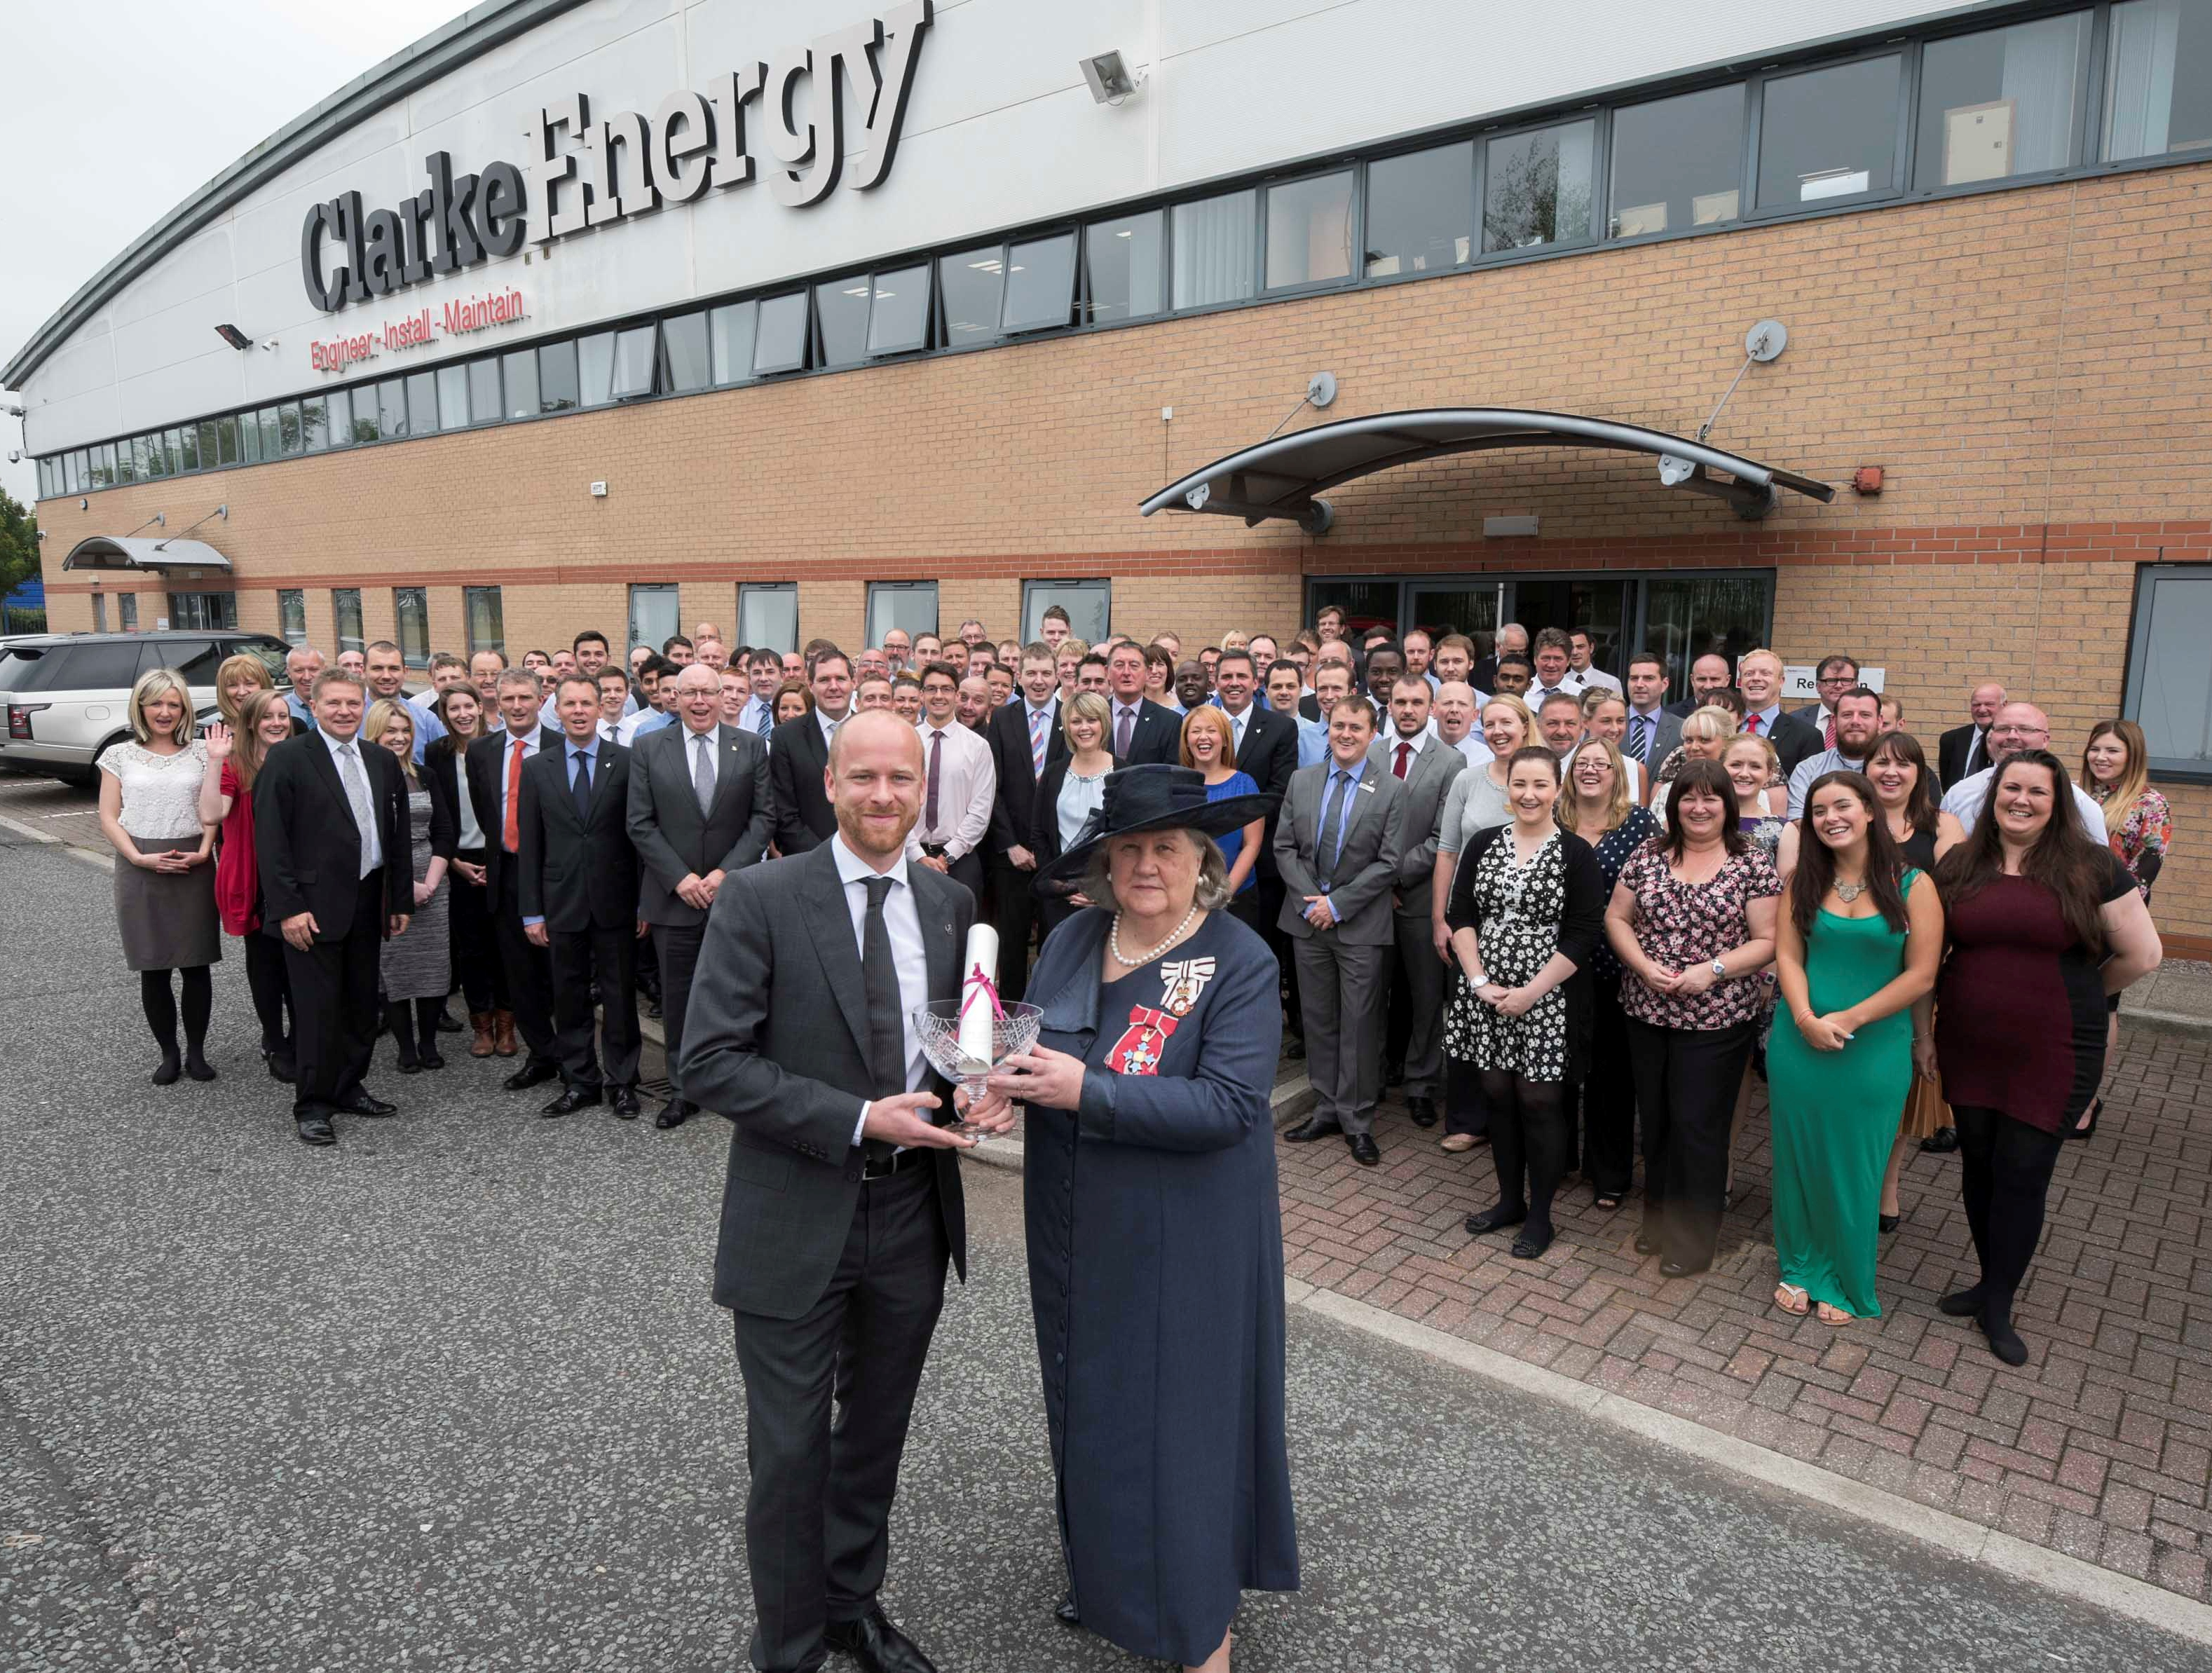 Clarke Energy Kirkby receive the Queens Award for Enterprise International Trade.